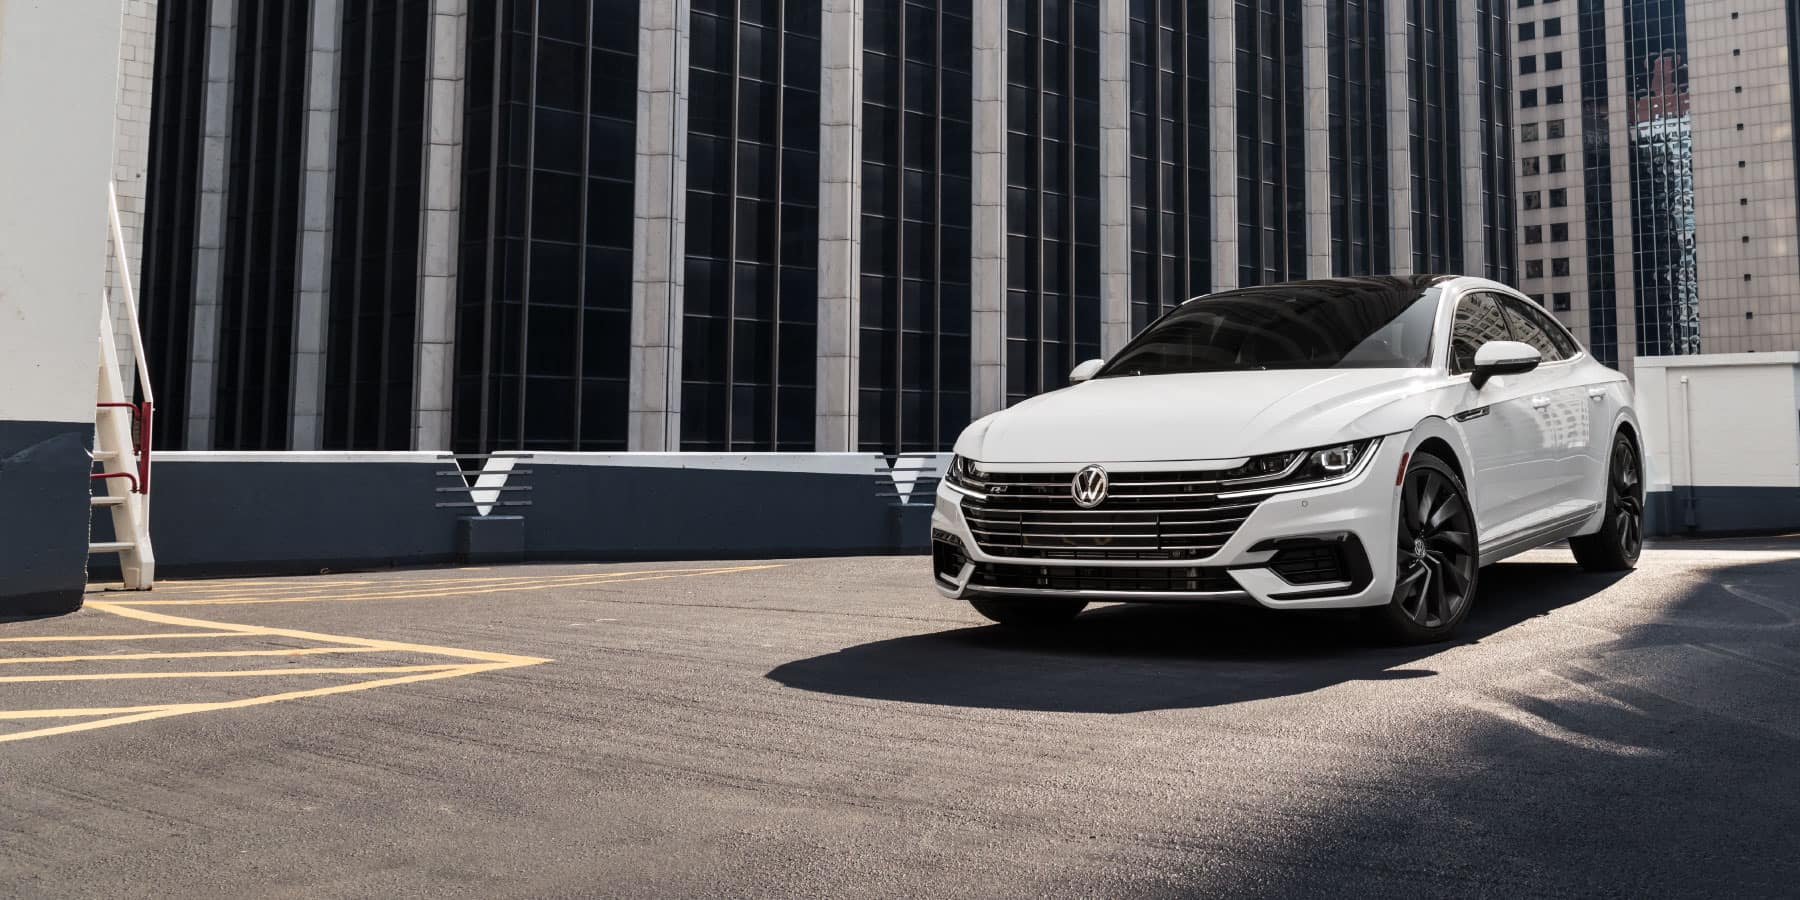 Autobahn Volkswagen Fort Worth | The All New Arteon is Here!